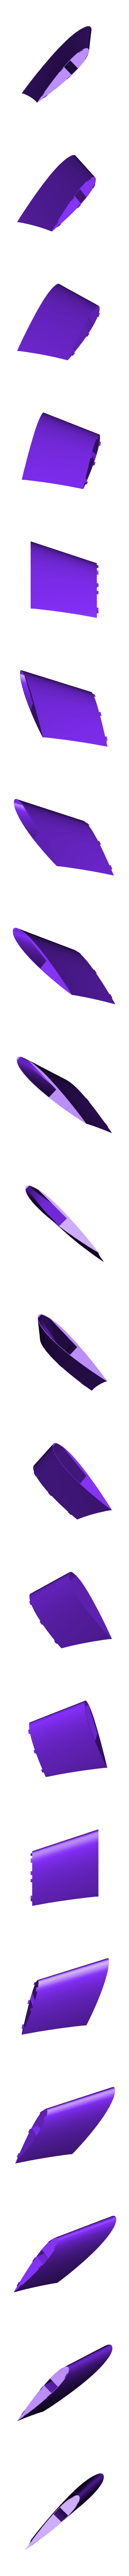 Wing3_L_RC.stl Download free STL file Test part - Flying wing - UAV - The Blackwing - • 3D printable design, Eclipson